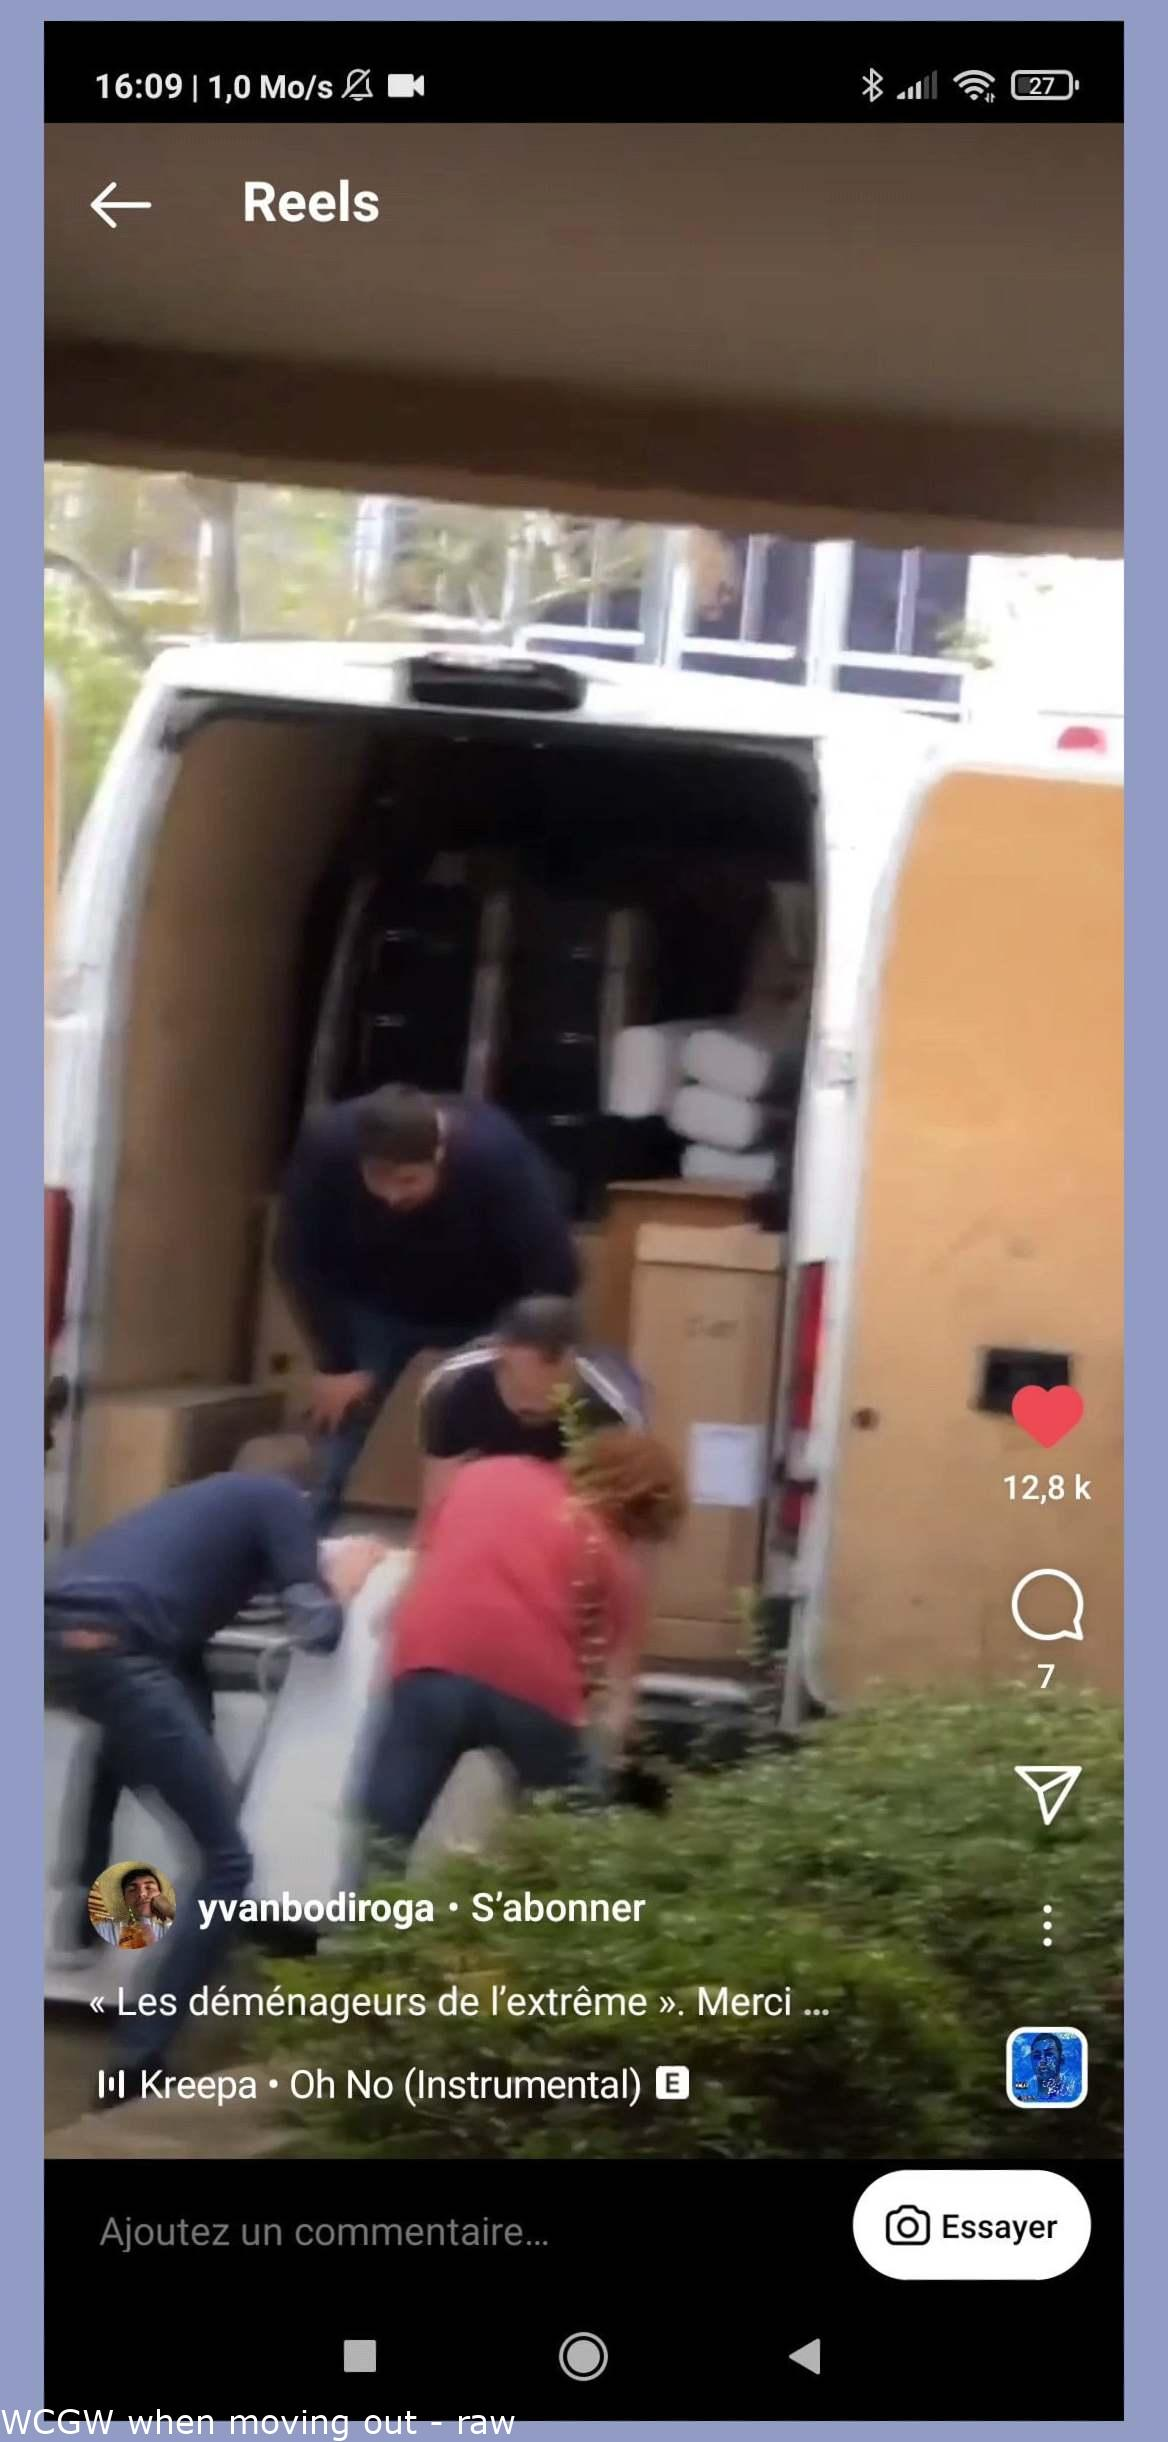 WCGW when moving out